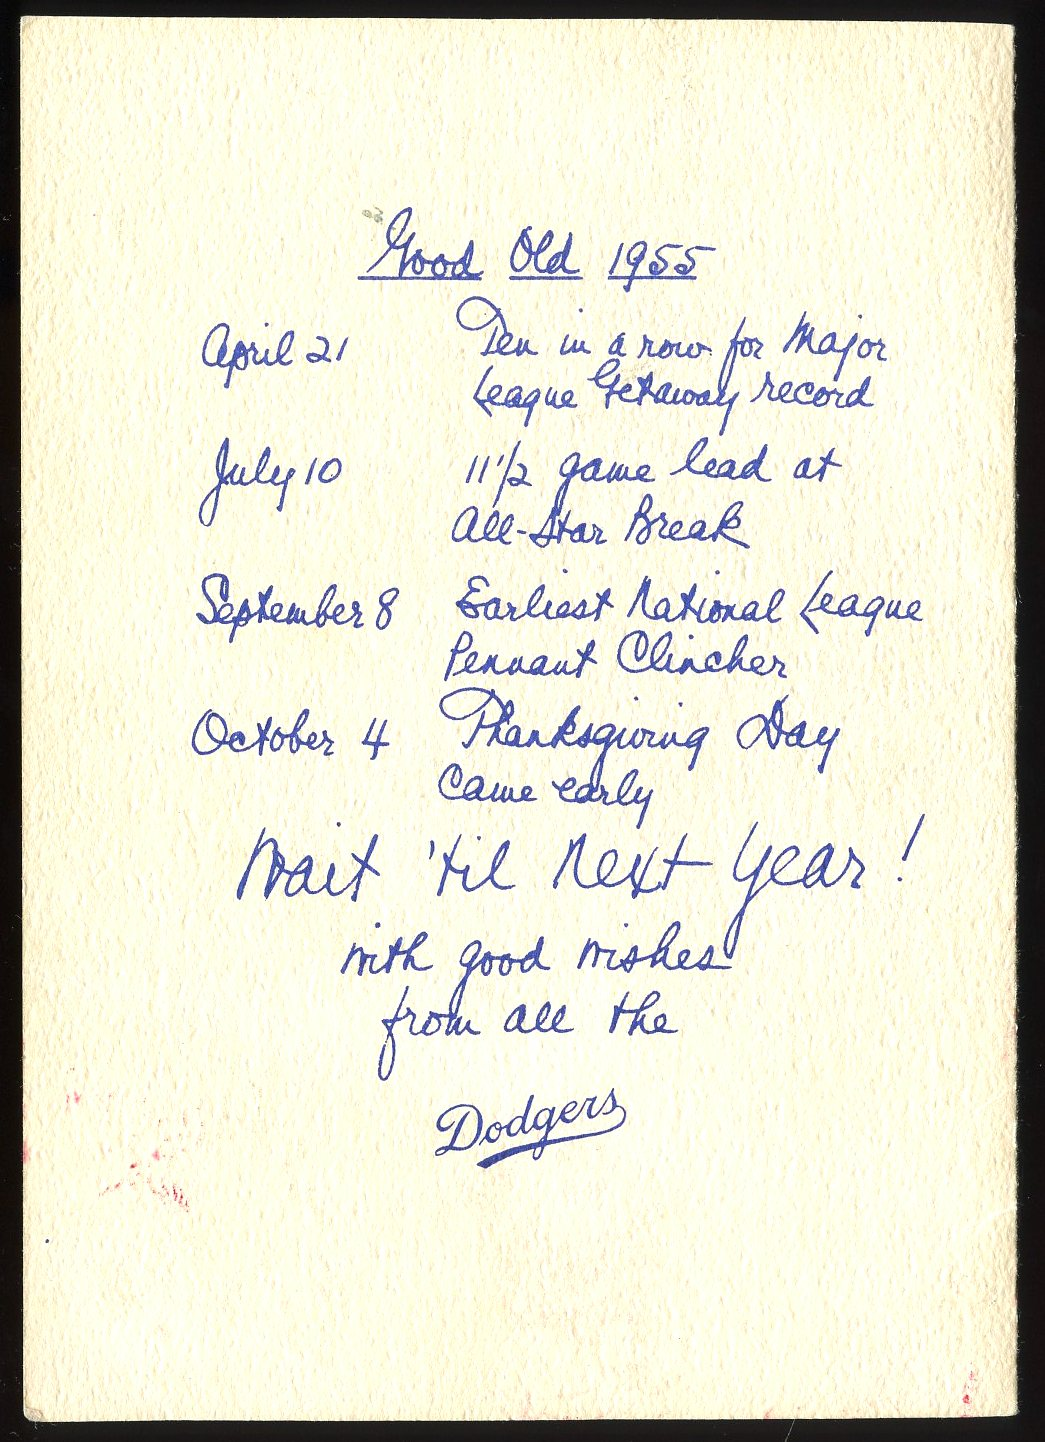 A Dodger Christmas Card and a Letter to a Fan at BST Auctions